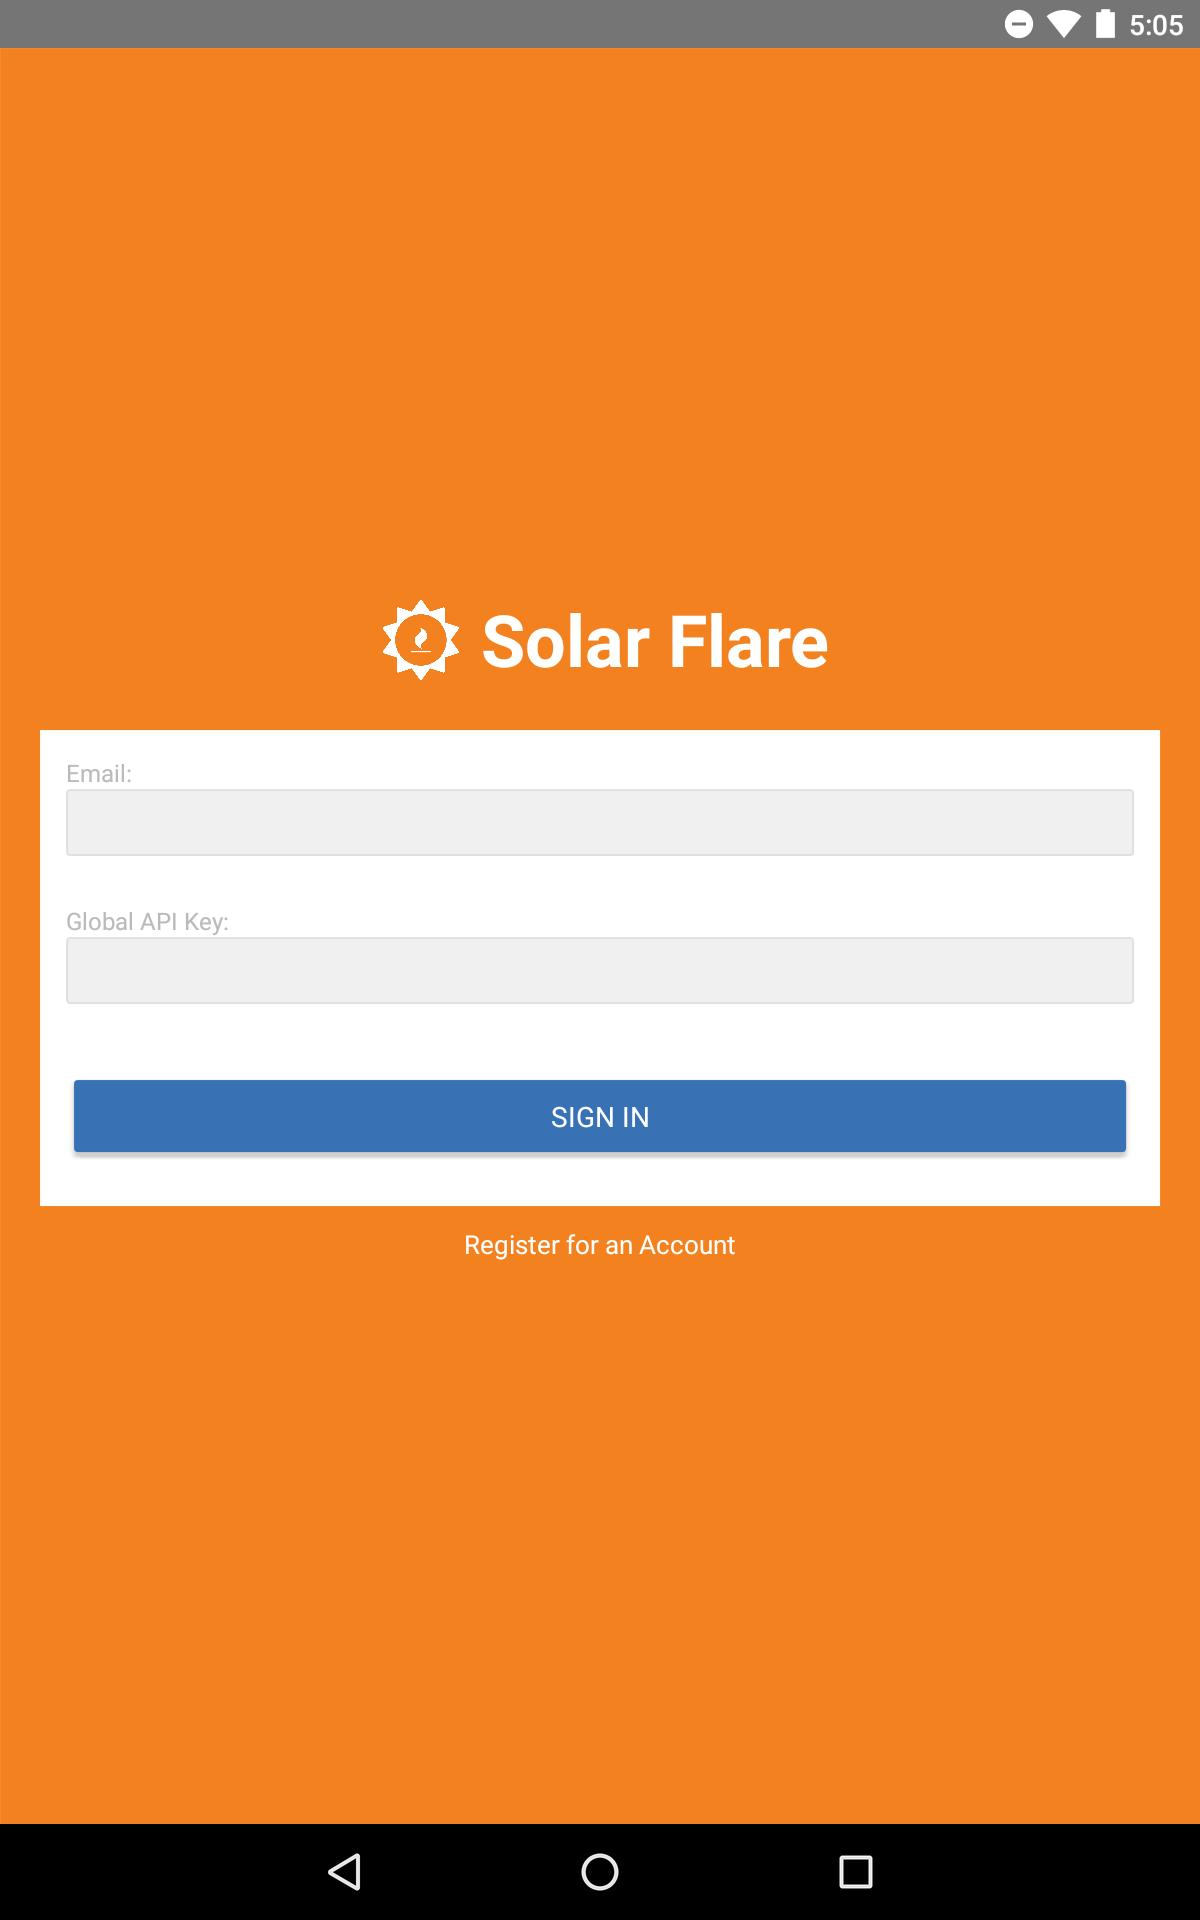 Solar Flare for Cloudflare for Android - APK Download